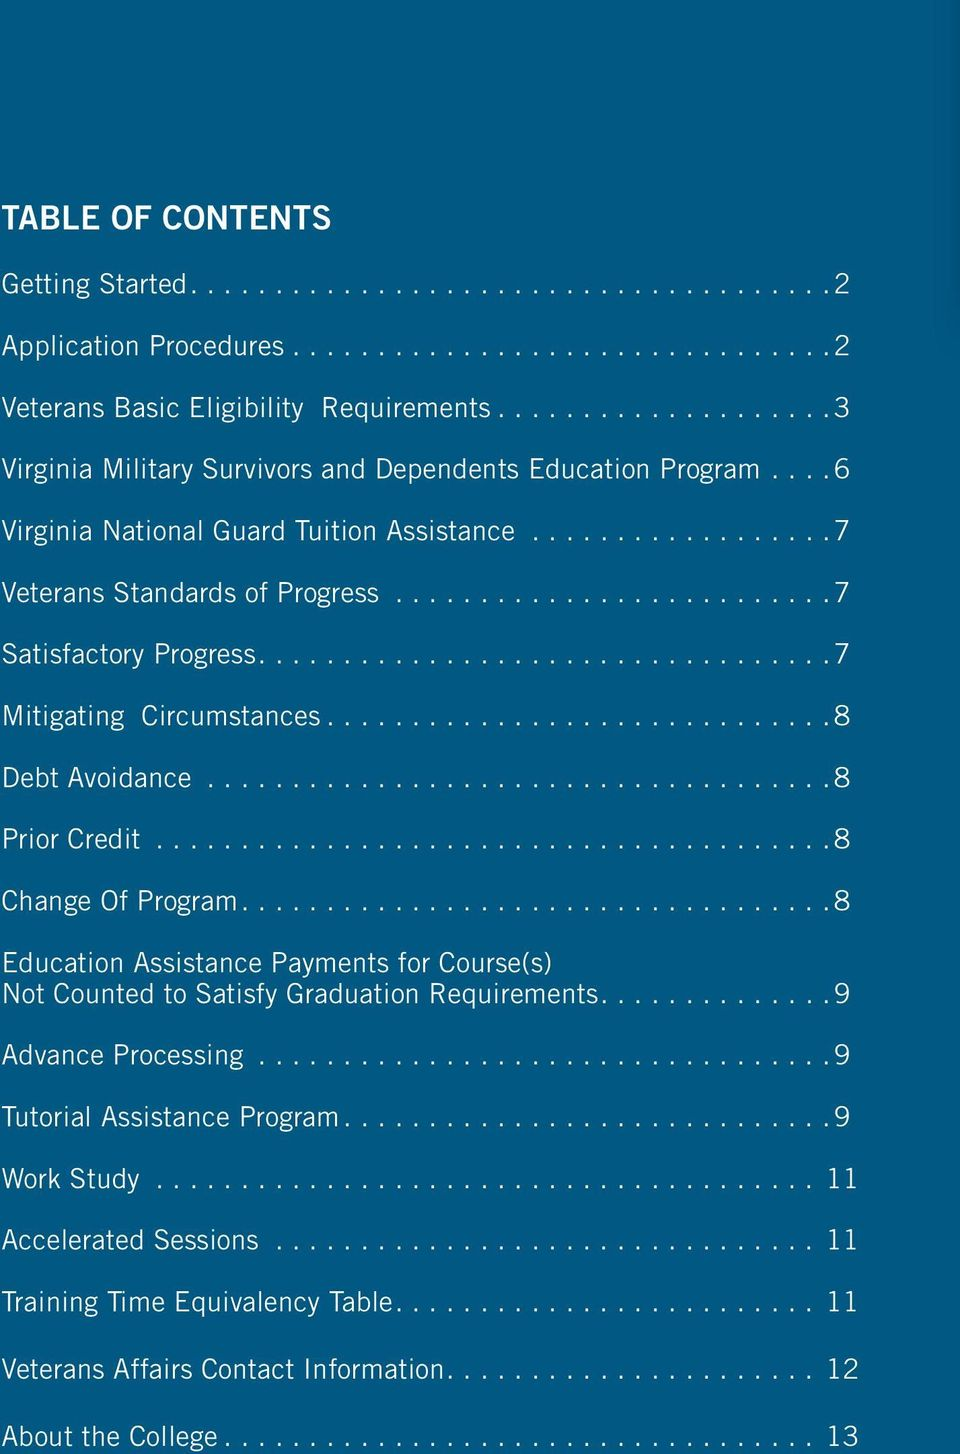 .. 8 Prior Credit... 8 Change Of Program.... 8 Education Assistance Payments for Course(s) Not Counted to Satisfy Graduation Requirements.... 9 Advance Processing.